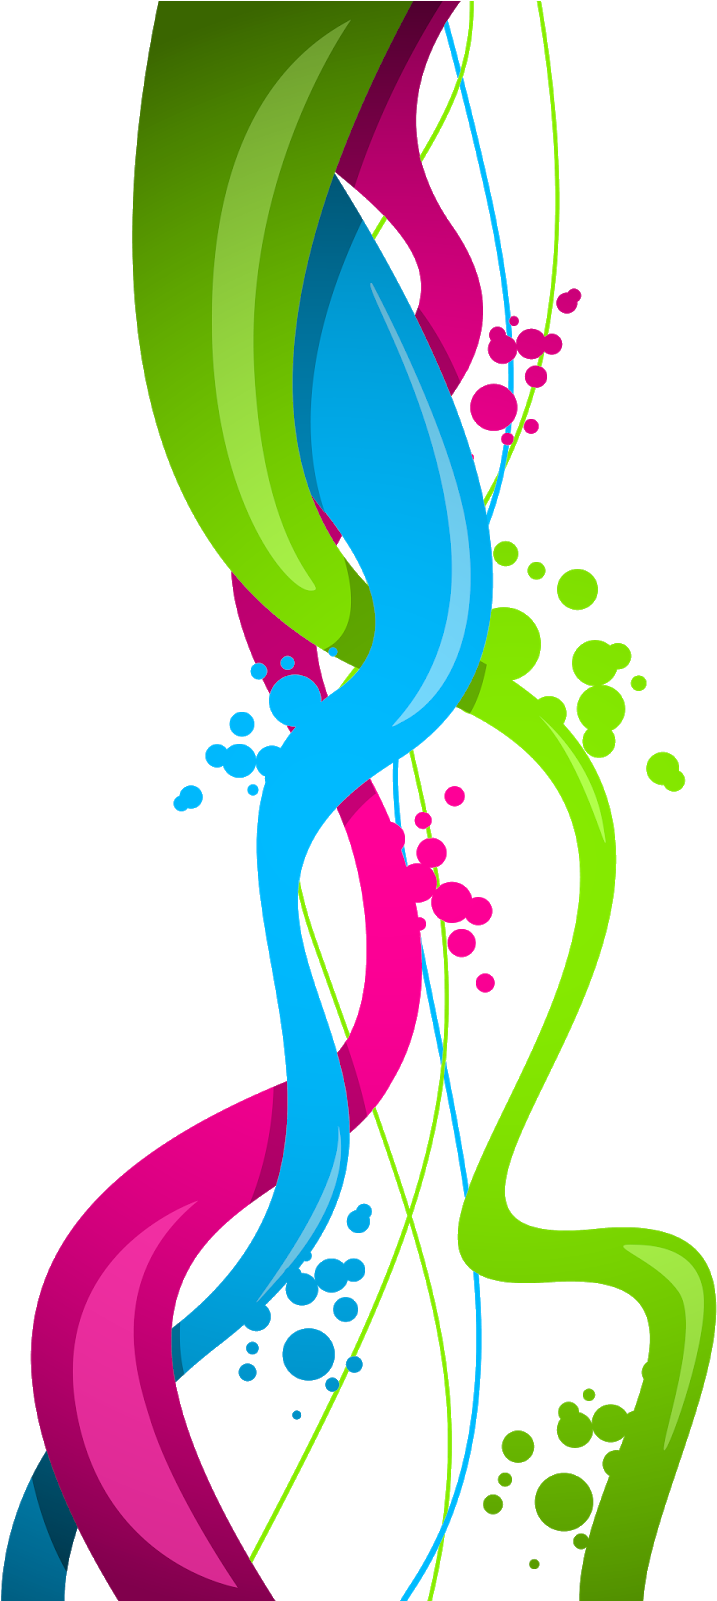 Cool Abstract Design Free Png Download.